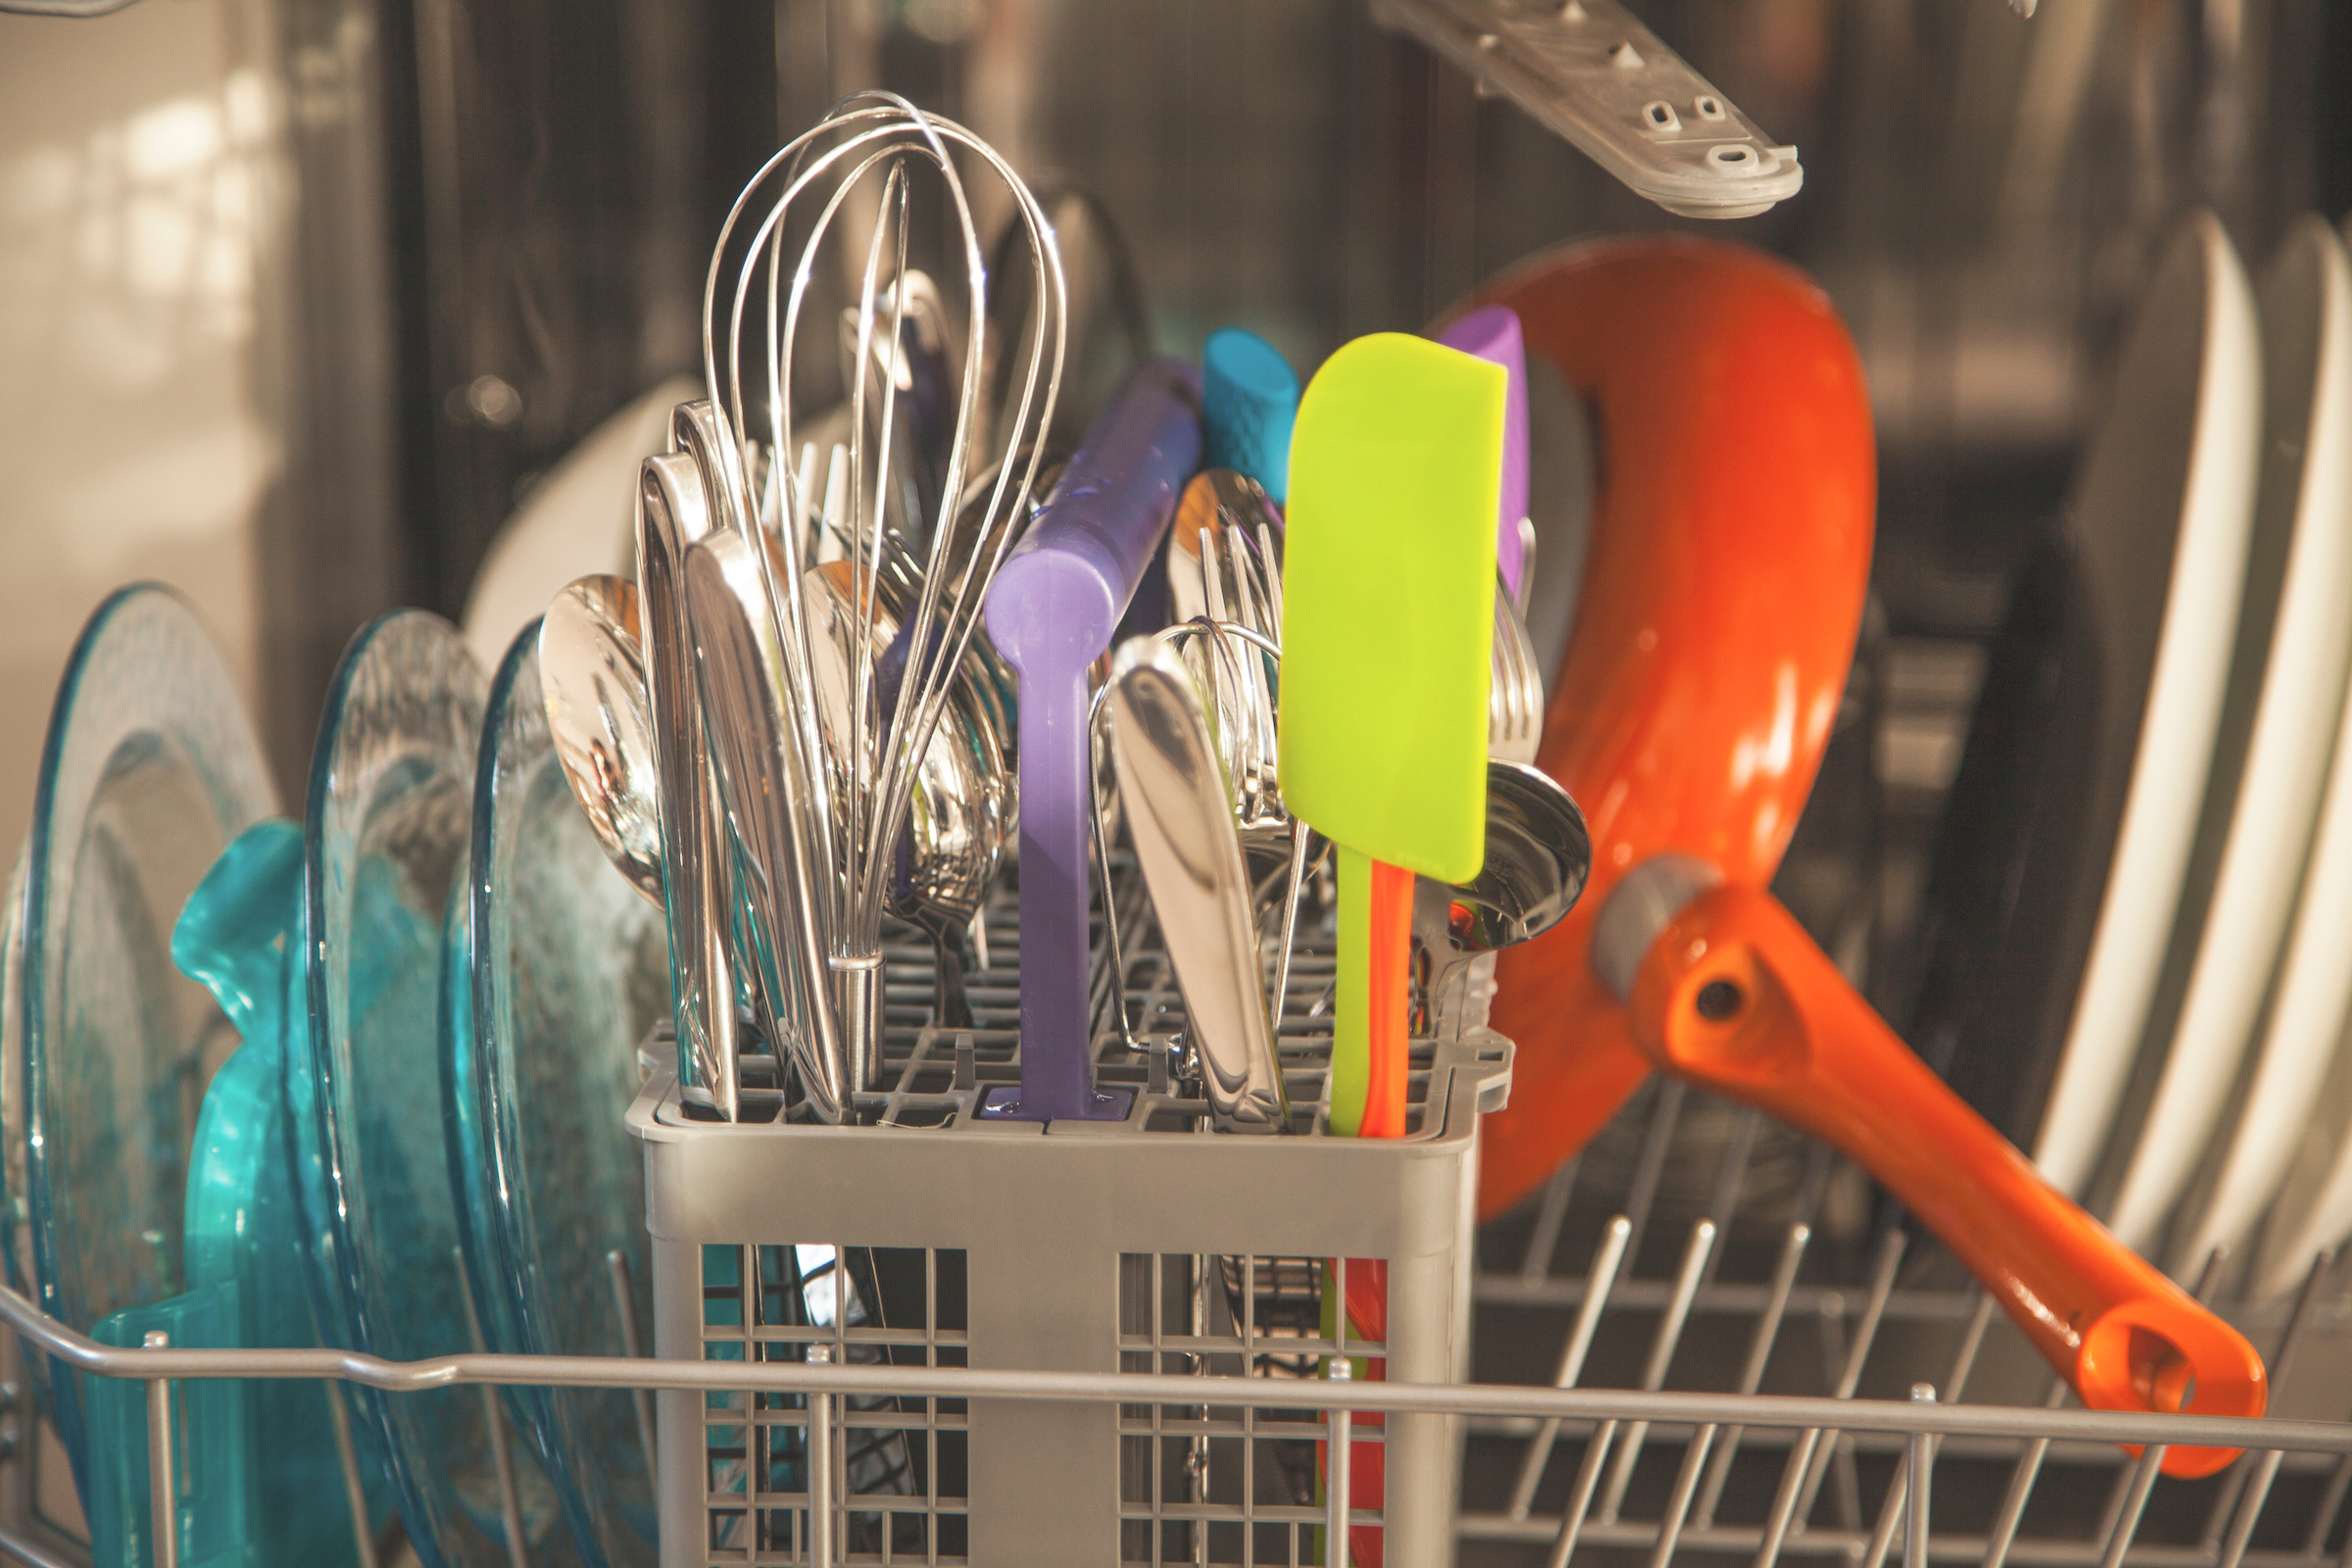 Dishwasher running longer than normal? This might be the problem.